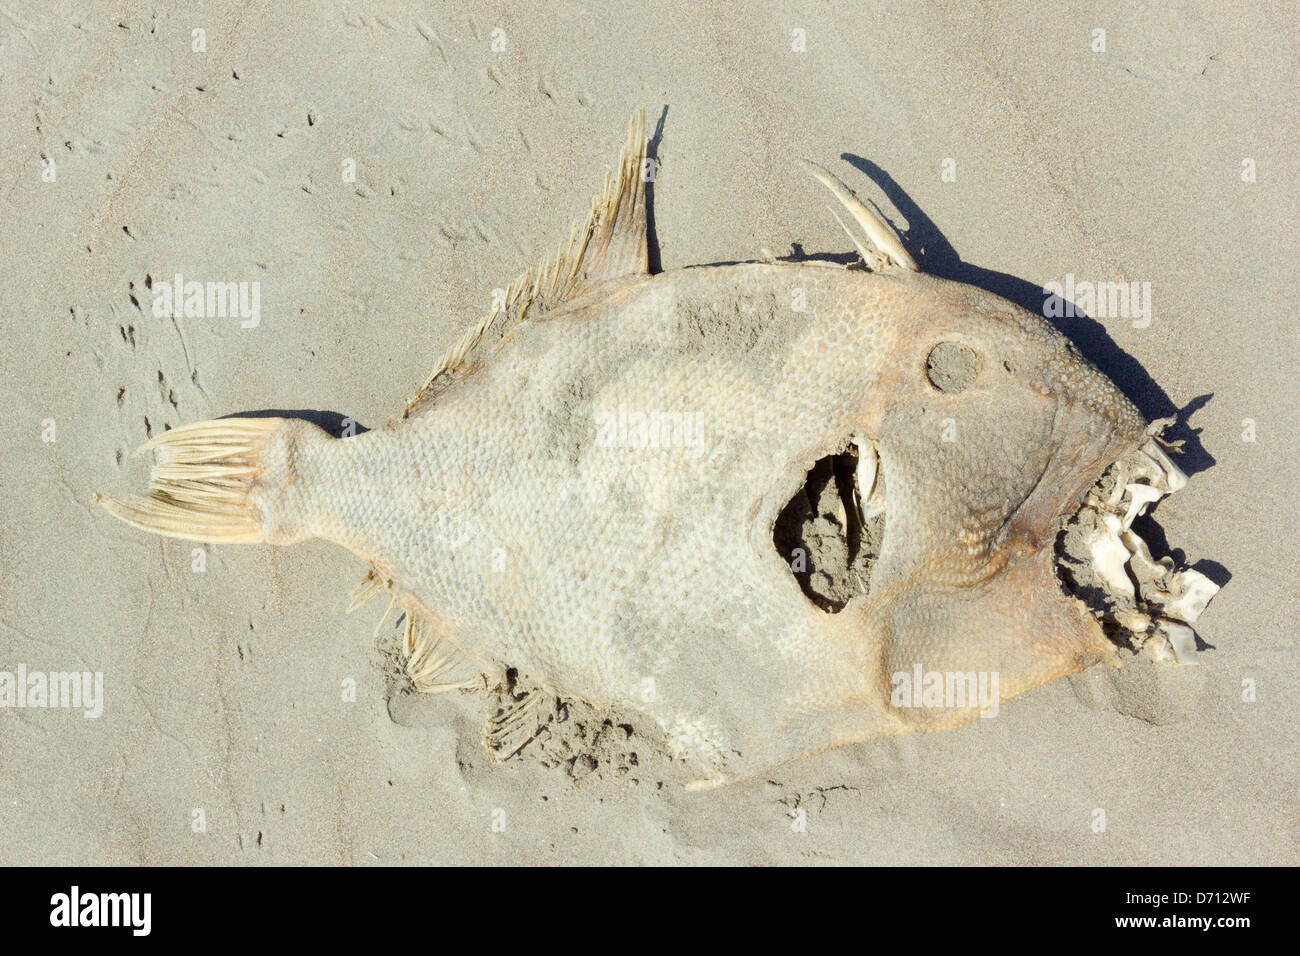 Rotten fish stock photos rotten fish stock images alamy dead fish on a beach on the pacific coast of ecuador stock image publicscrutiny Images